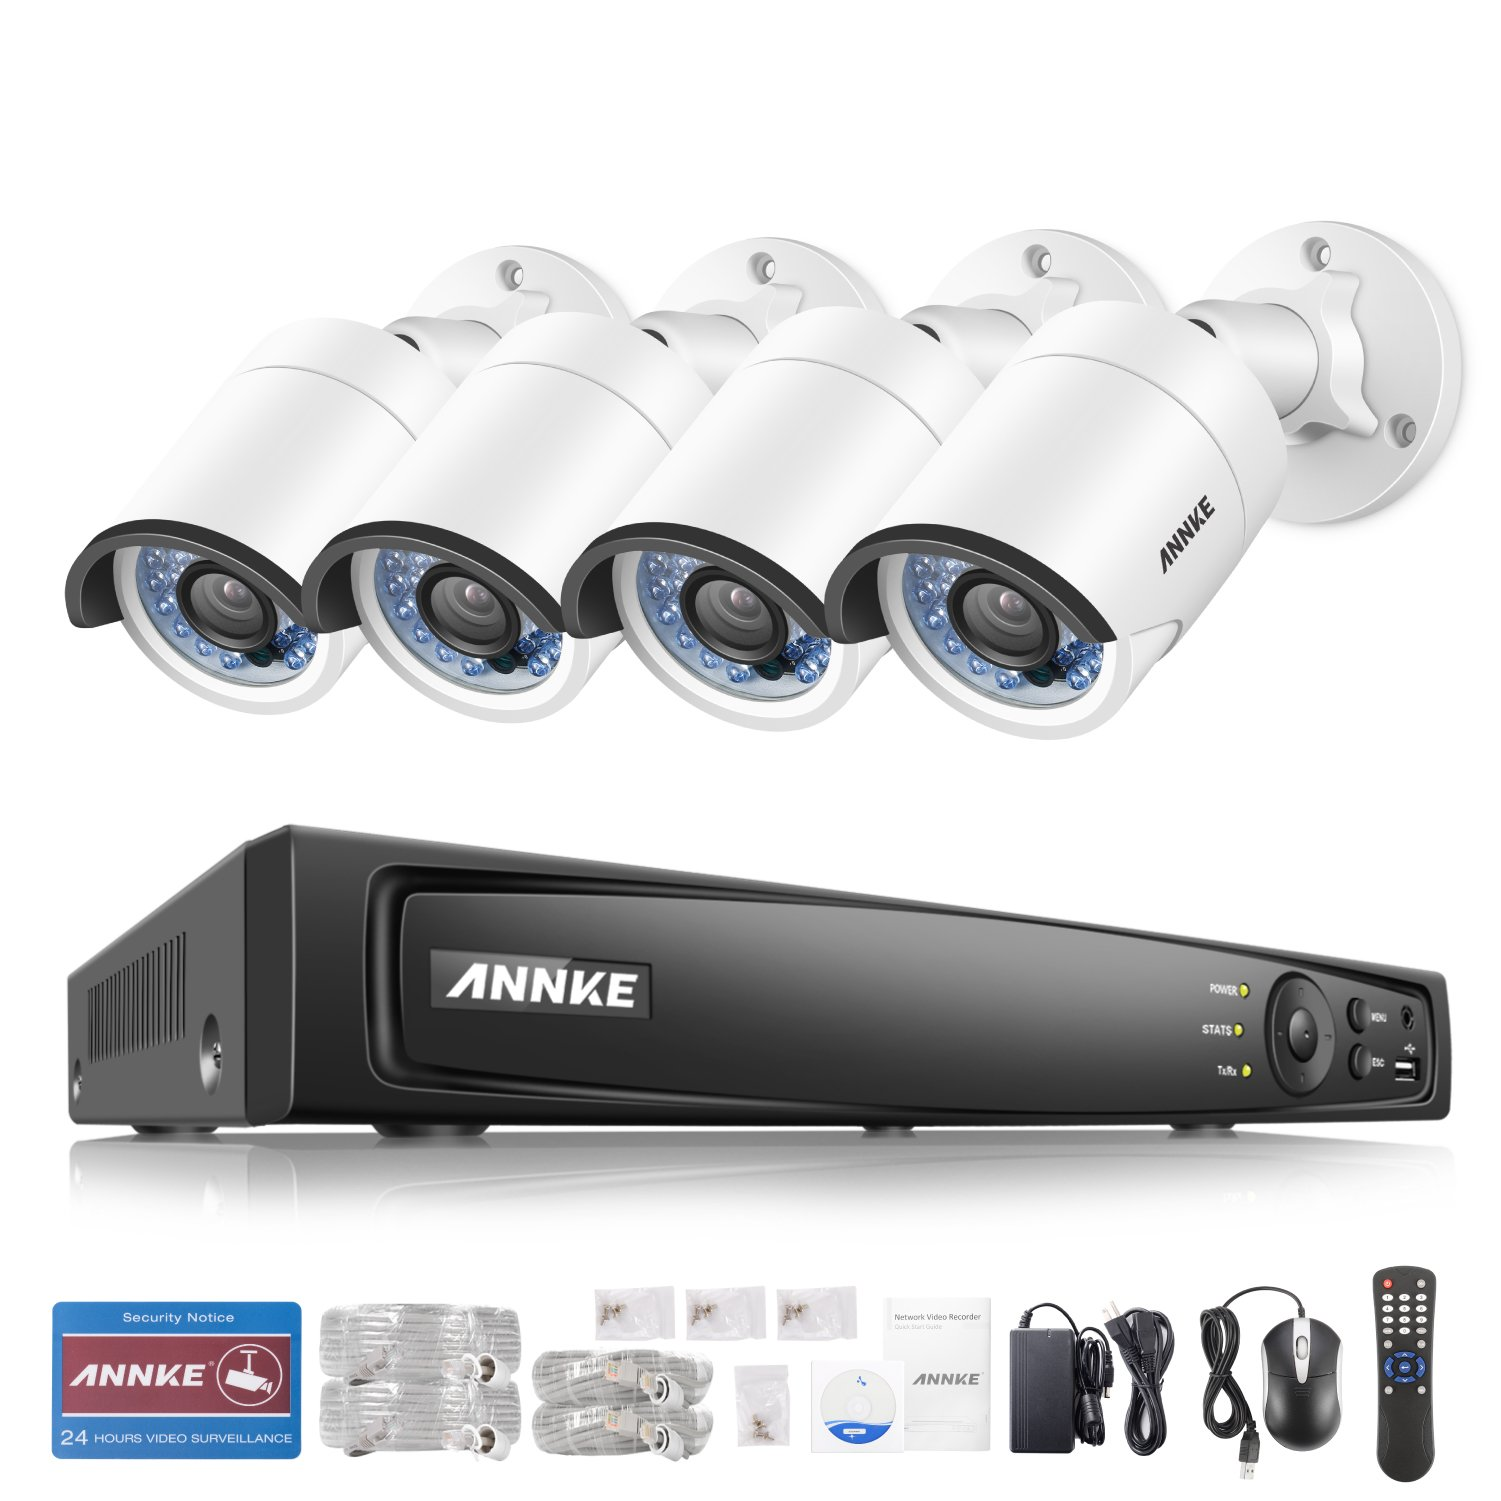 ANNKE 1080P Professional POE (2MP/3MP/4MP/5MP/6MP) NVR Video Security System and (4) 2.0MP CCTV Weatherproof Network/IP Cameras with IR-cut Night Vision, NO HDD Included